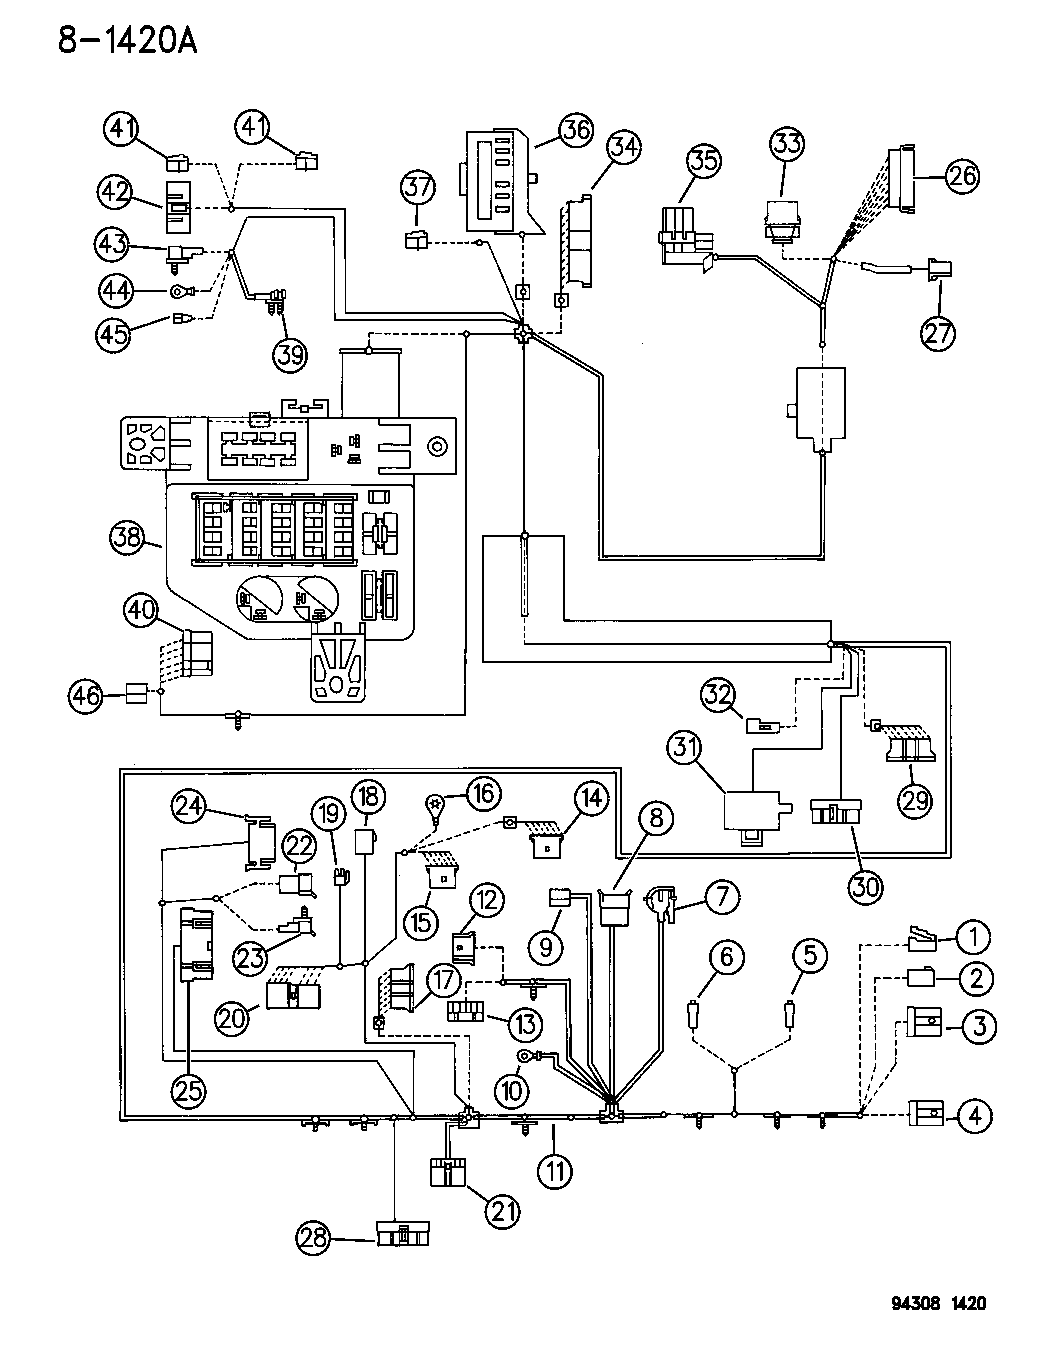 1994 Dodge Ram 3500 Wiring - Instrument Panel